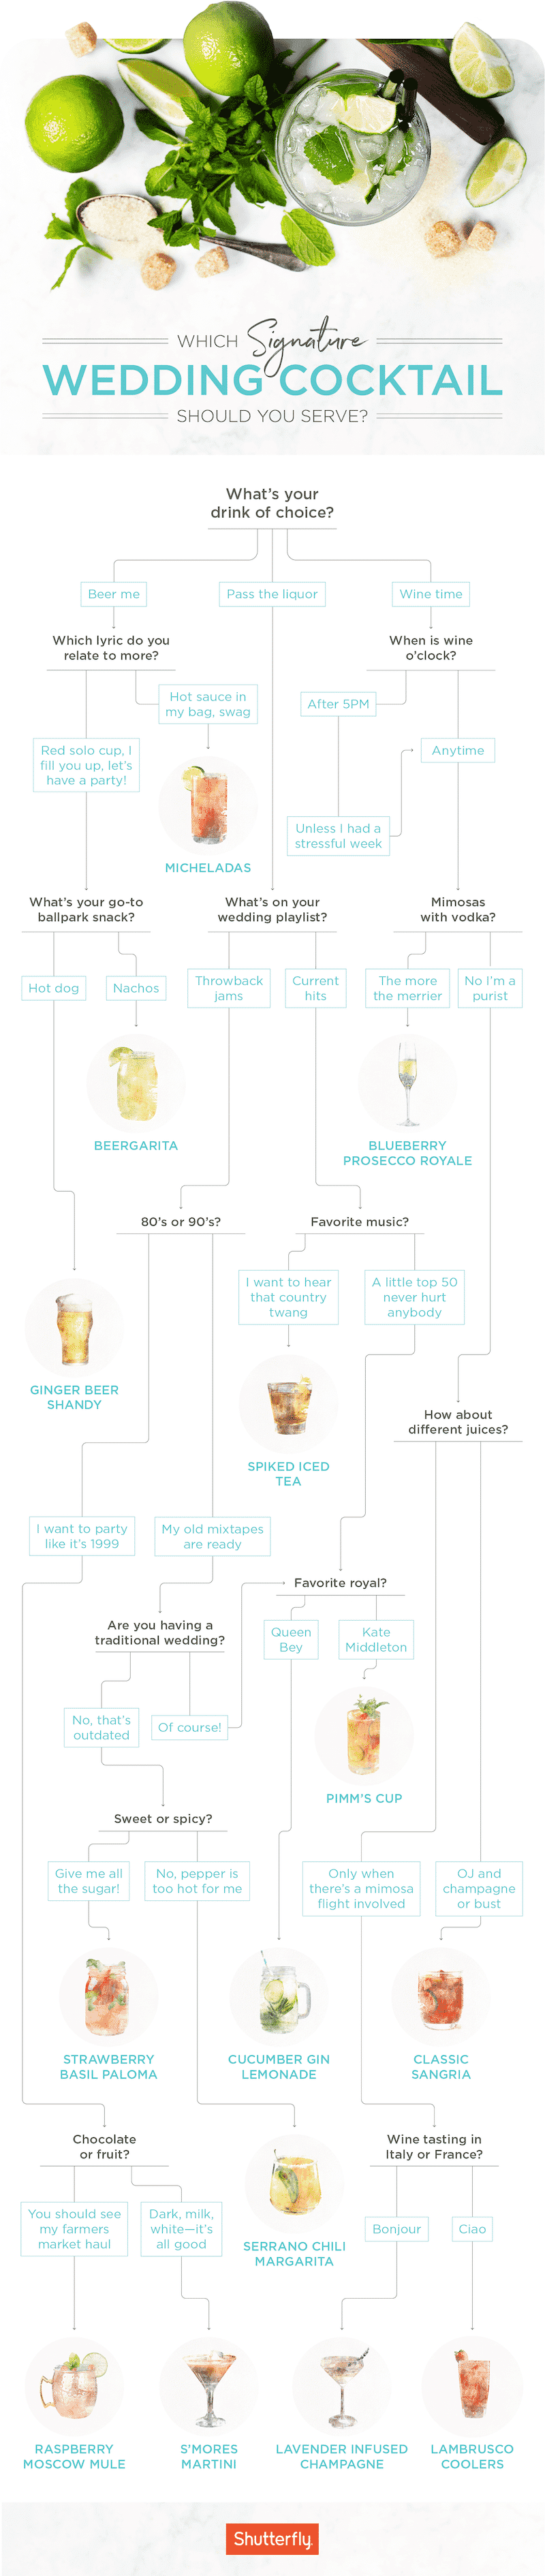 Choosing a Signature Cocktail for Your Wedding has never been easier thanks to this great infographic chart from Shutterfly!